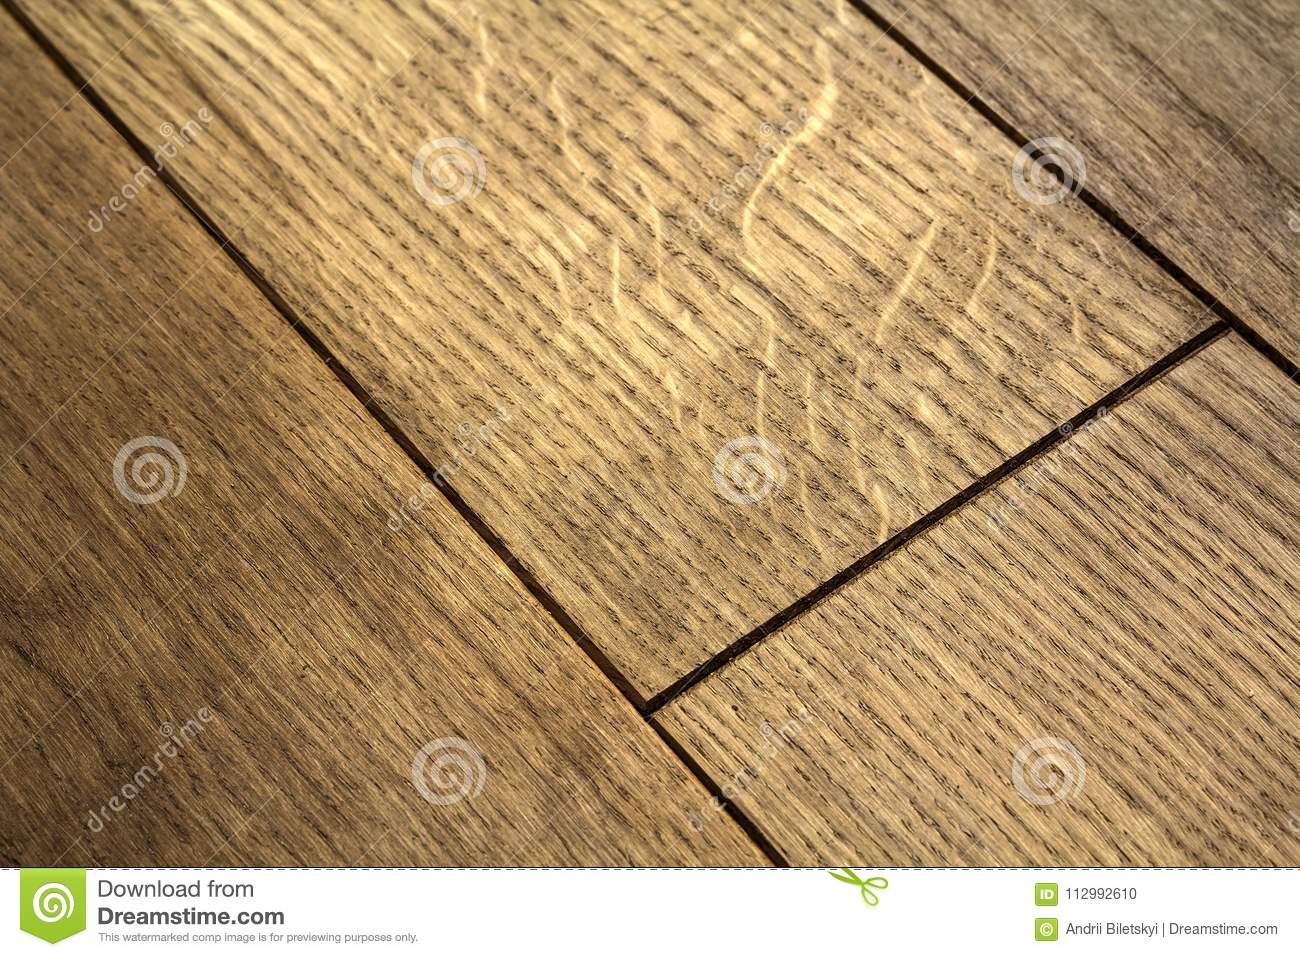 Natural brown texture wooden parquet floor boards